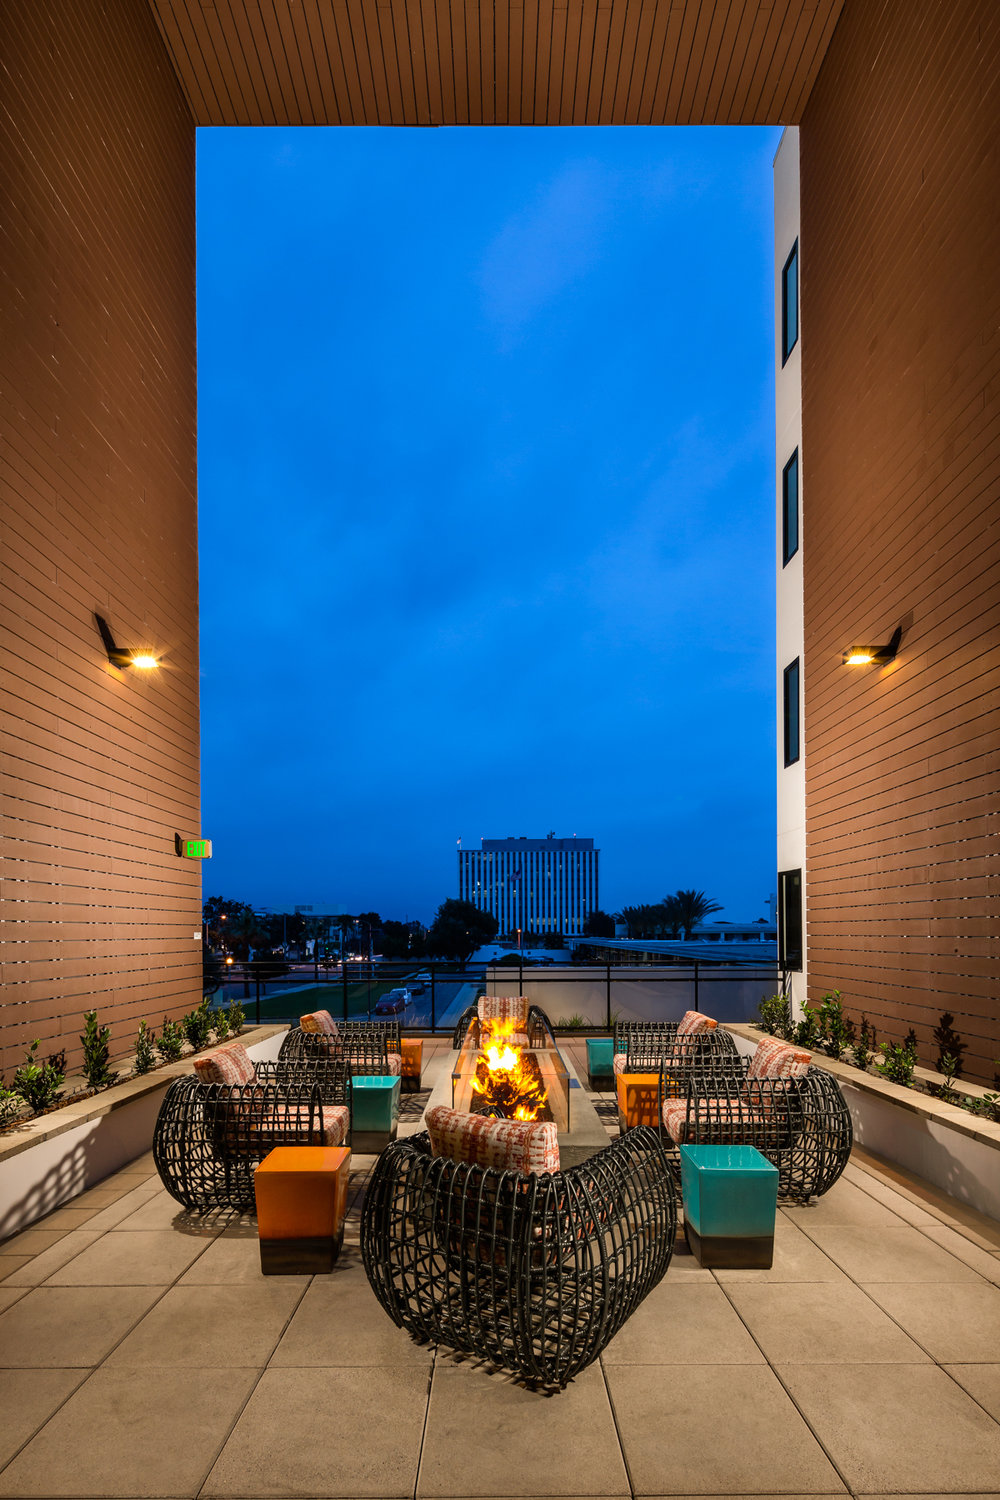 GS_Ellington_Phase_ll_Courtyard_Firepit_Twilight_lll.jpg